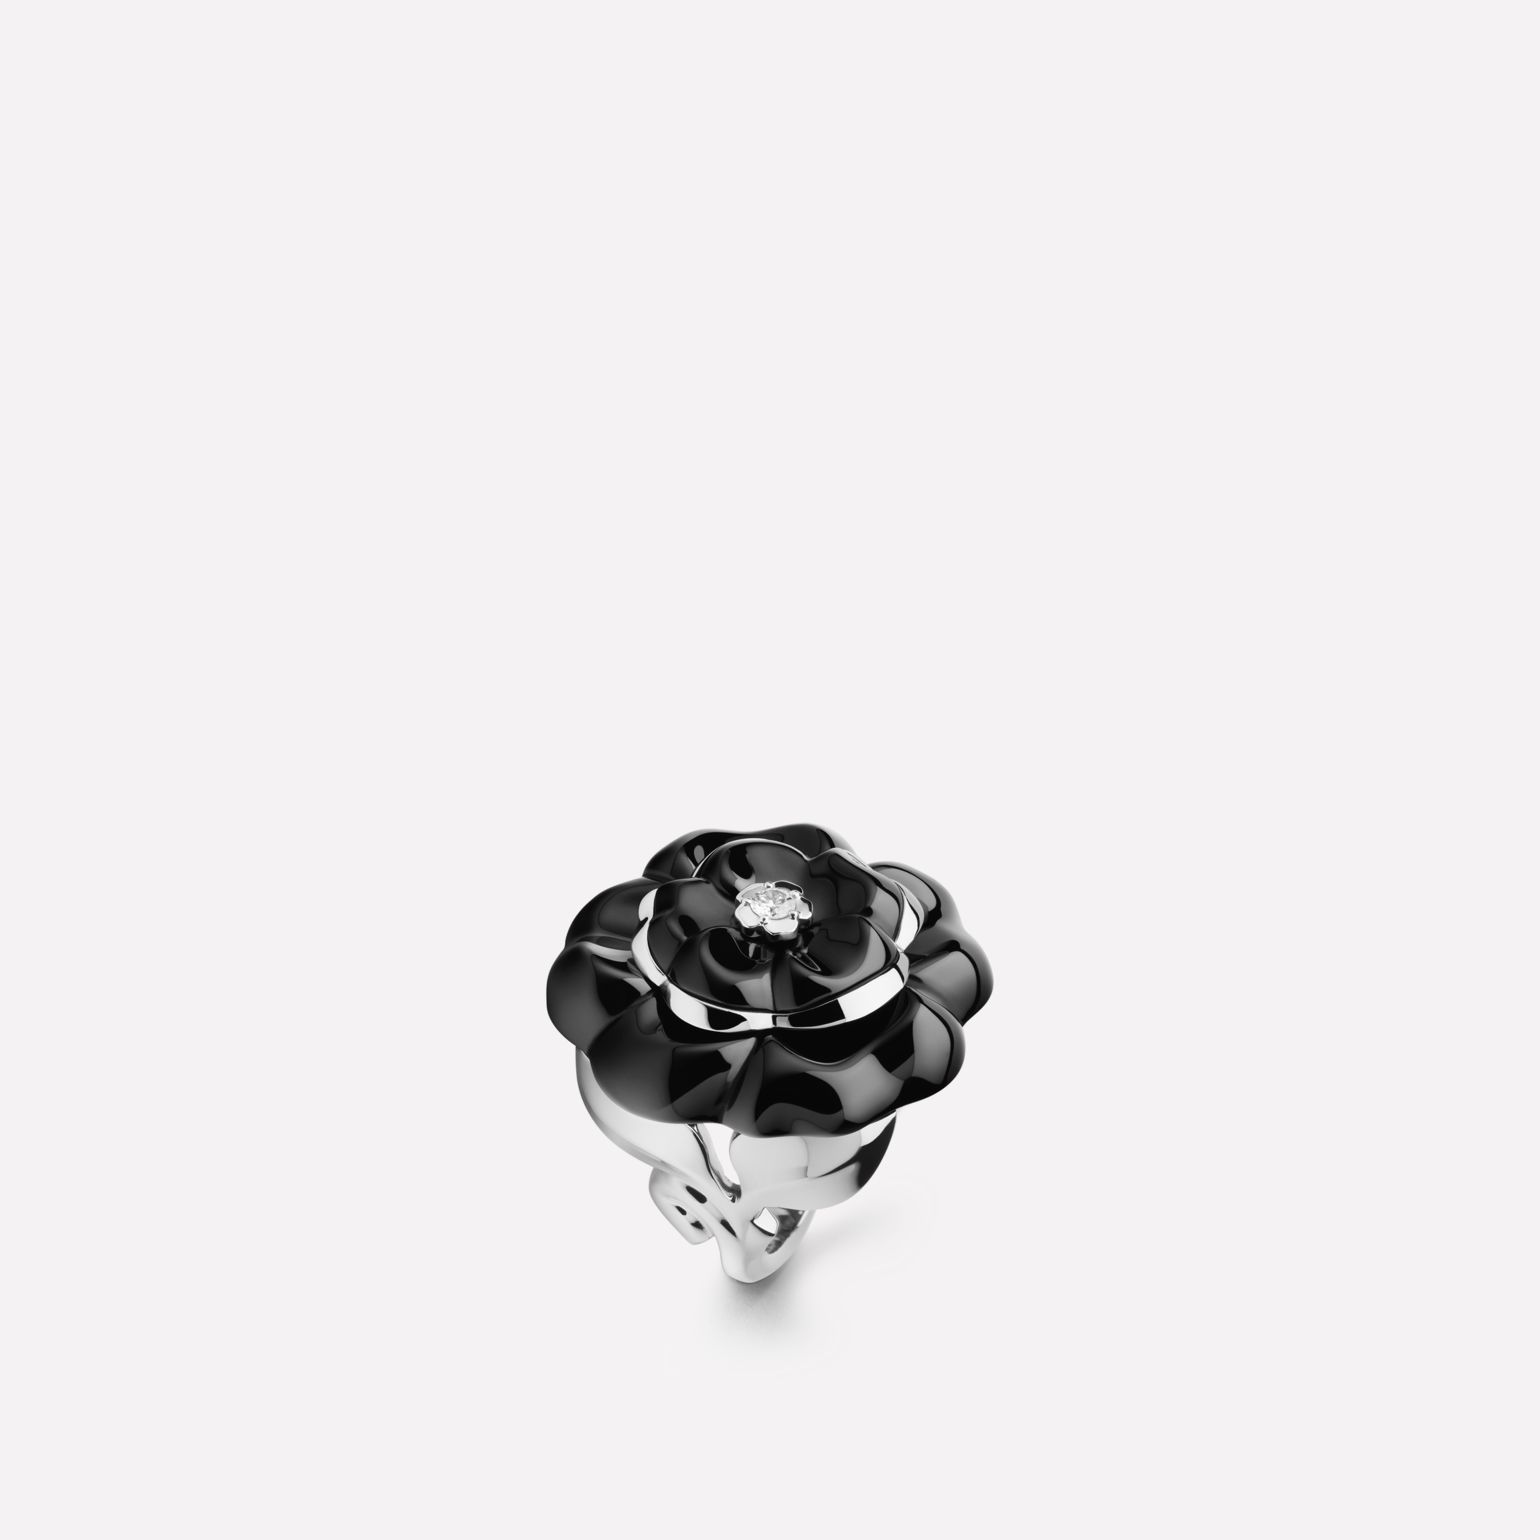 Camélia Ring Camélia Galbé ring in black ceramic, 18K white gold and central diamond